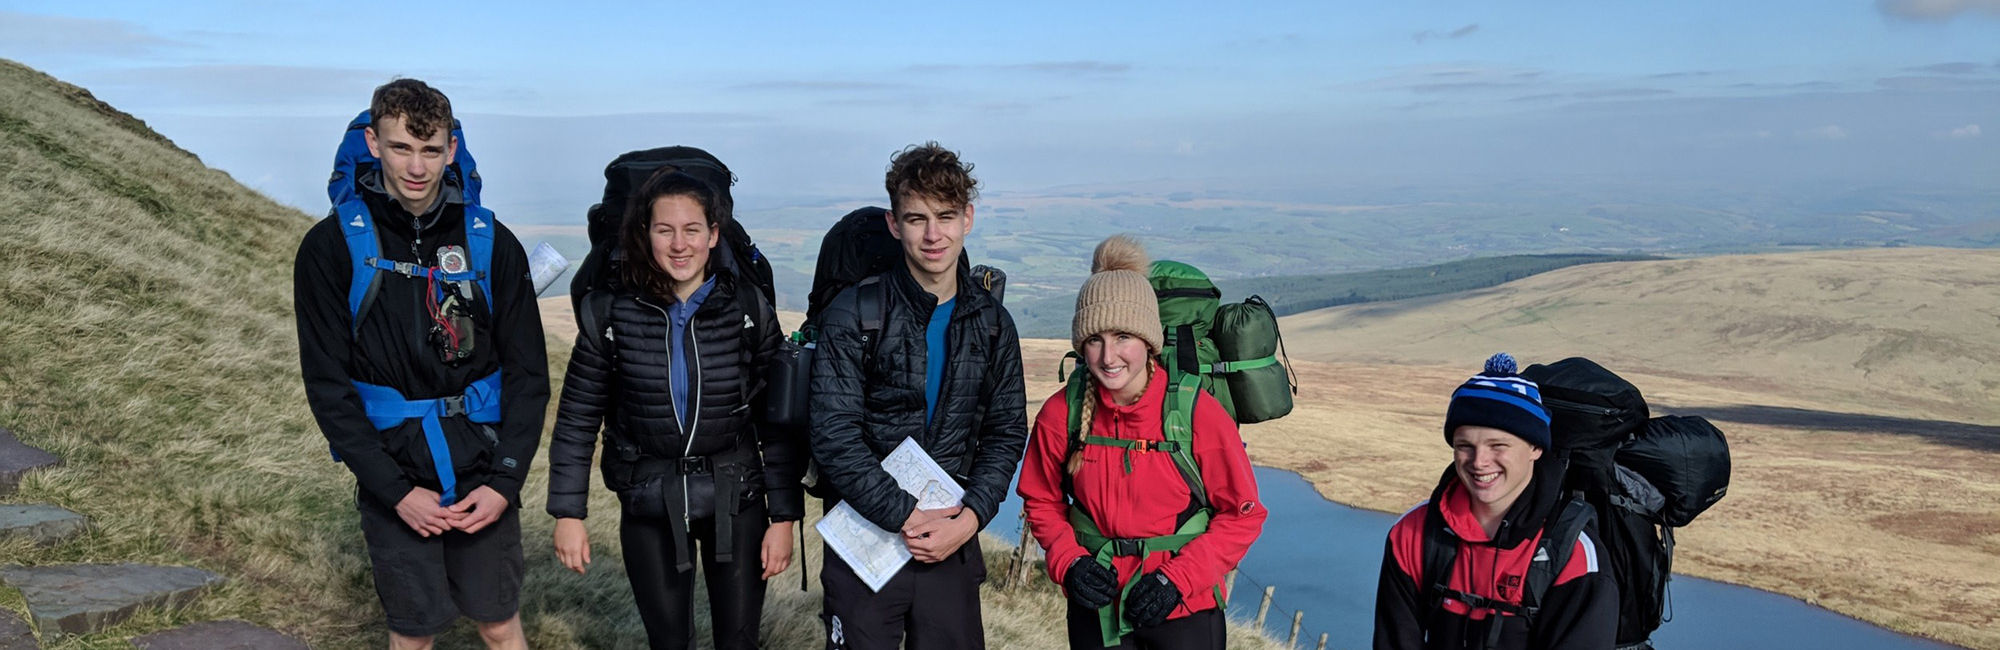 wycliffe pupils on a trip outdoors